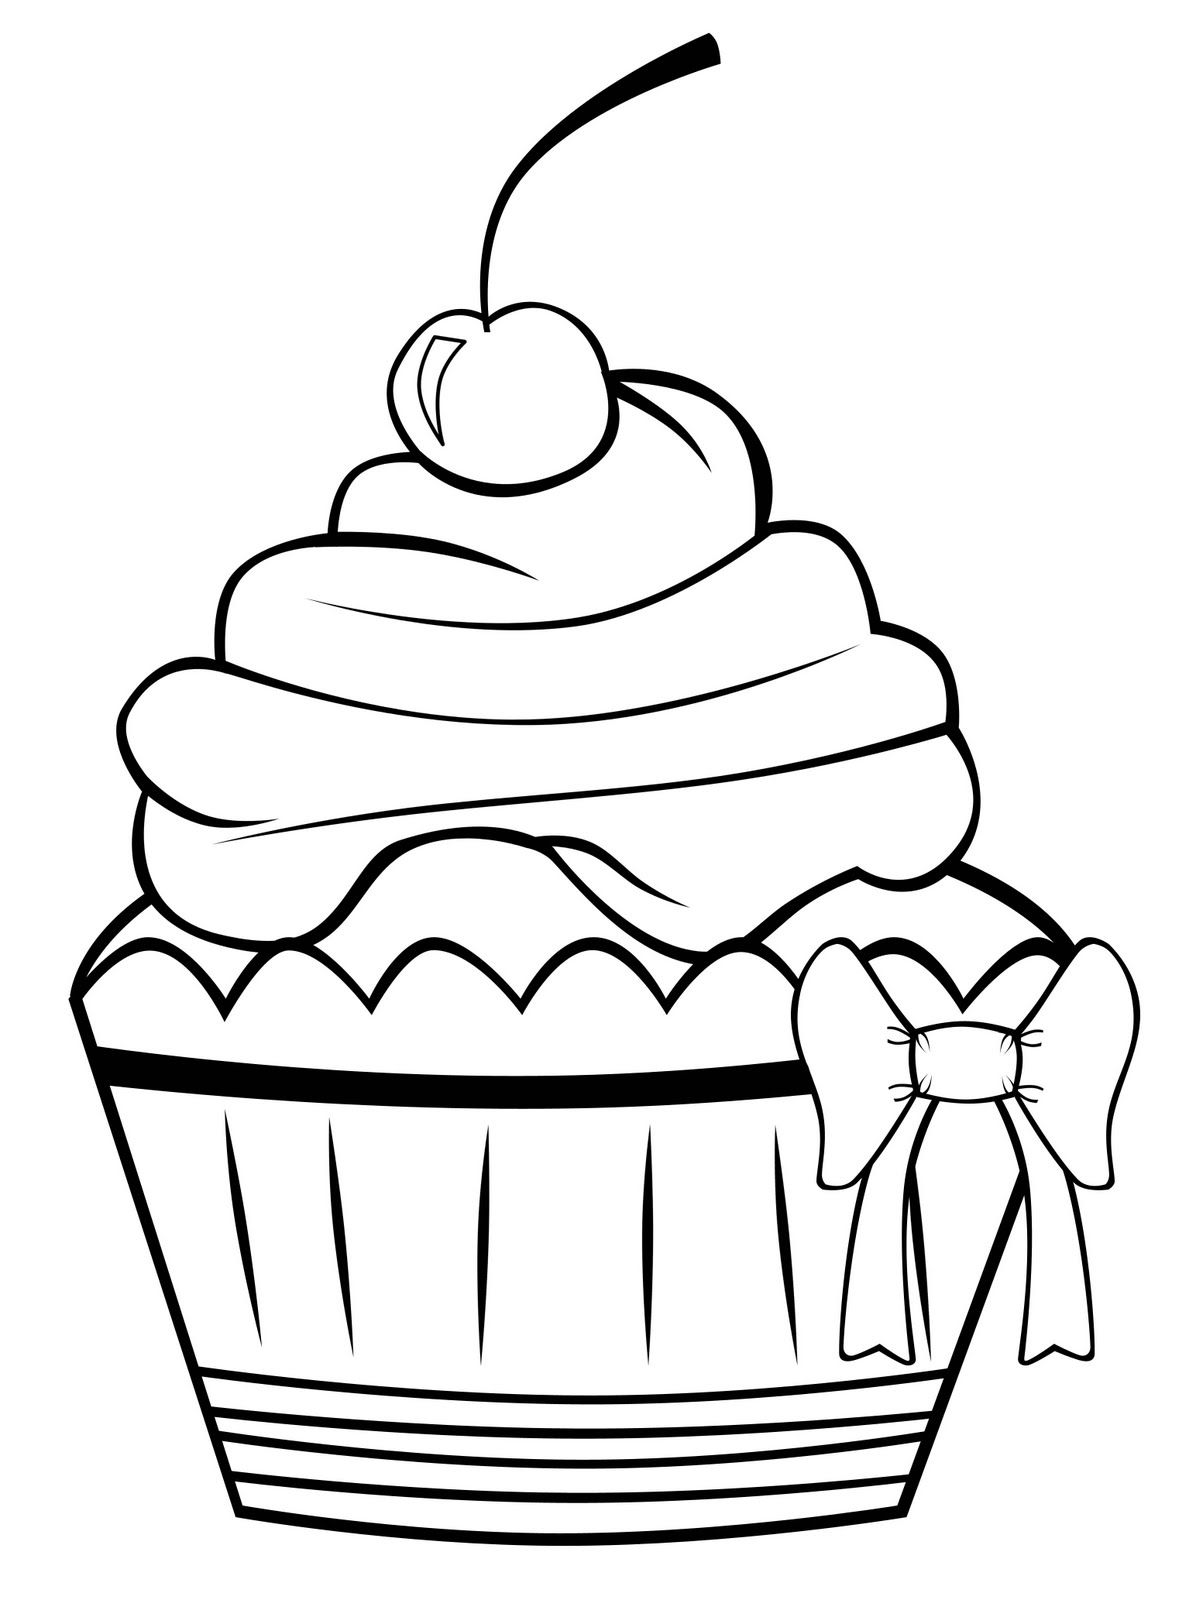 Free Printable Cupcake Coloring Pages For Kids Dengan